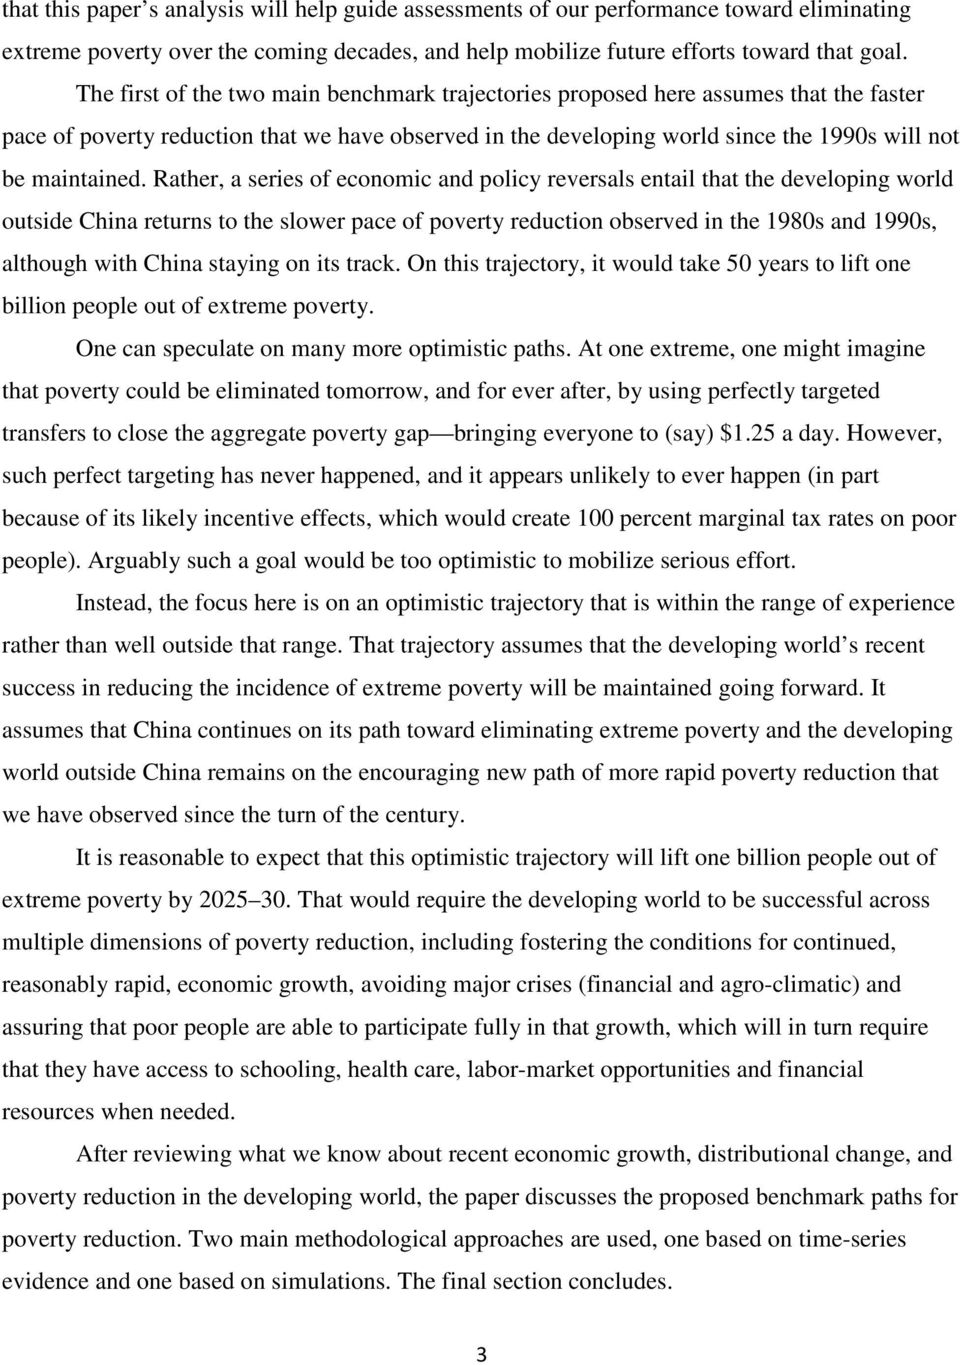 Rather, a series of economic and policy reversals entail that the developing world outside China returns to the slower pace of poverty reduction observed in the 1980s and 1990s, although with China